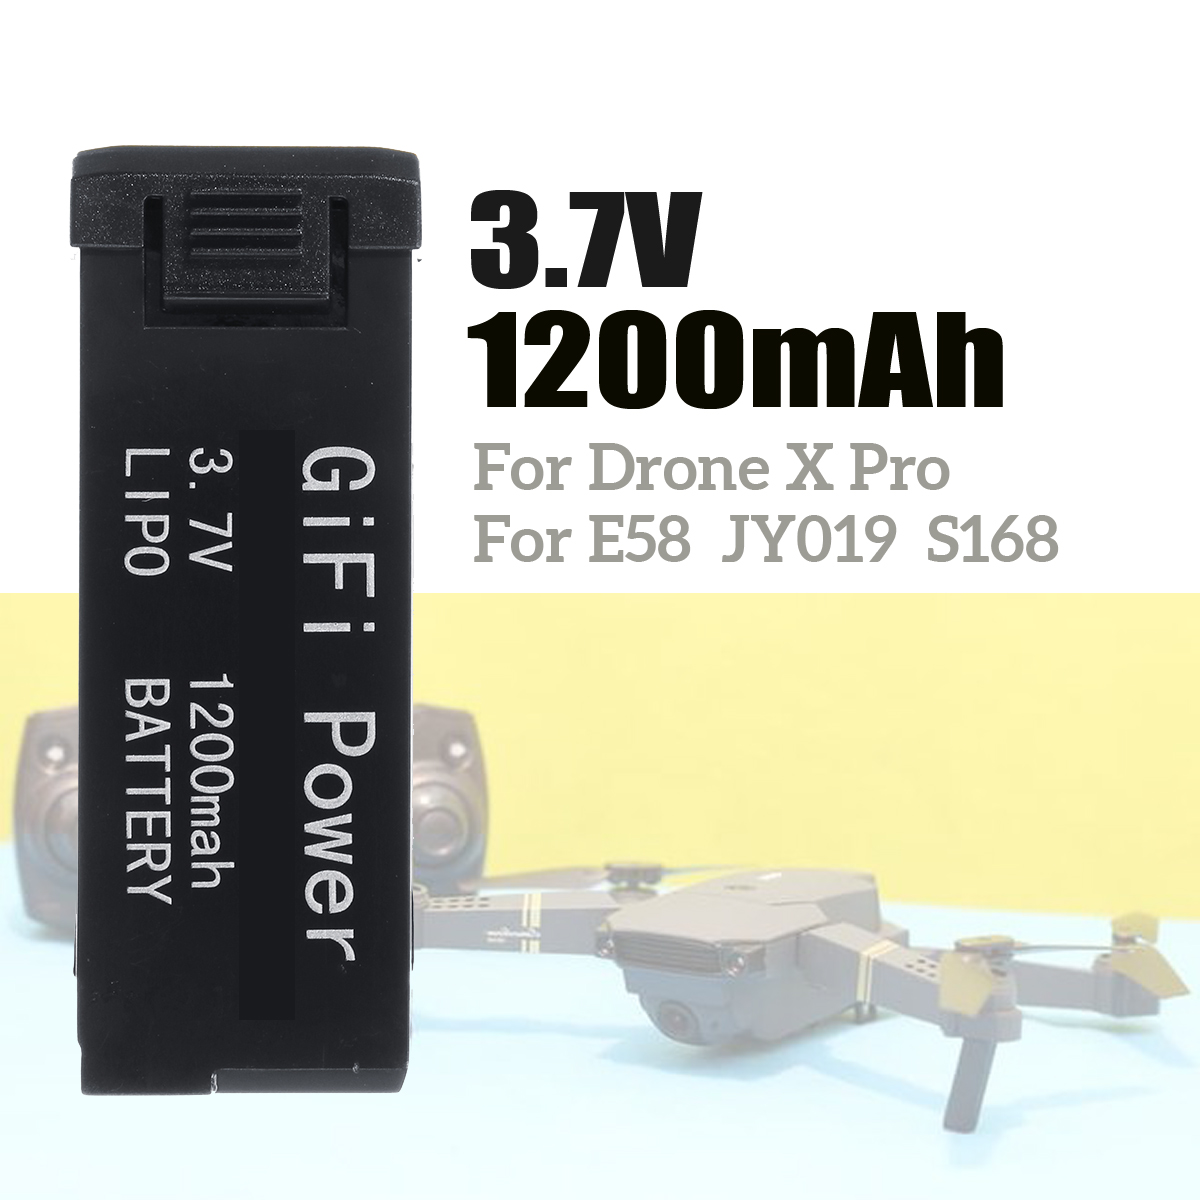 3.7 V 1200MAH Lipo Battery Rechargeable Replacement Portable For Drone X Pro RC E58 L800 S168  Quadcopter Battery Spare Parts